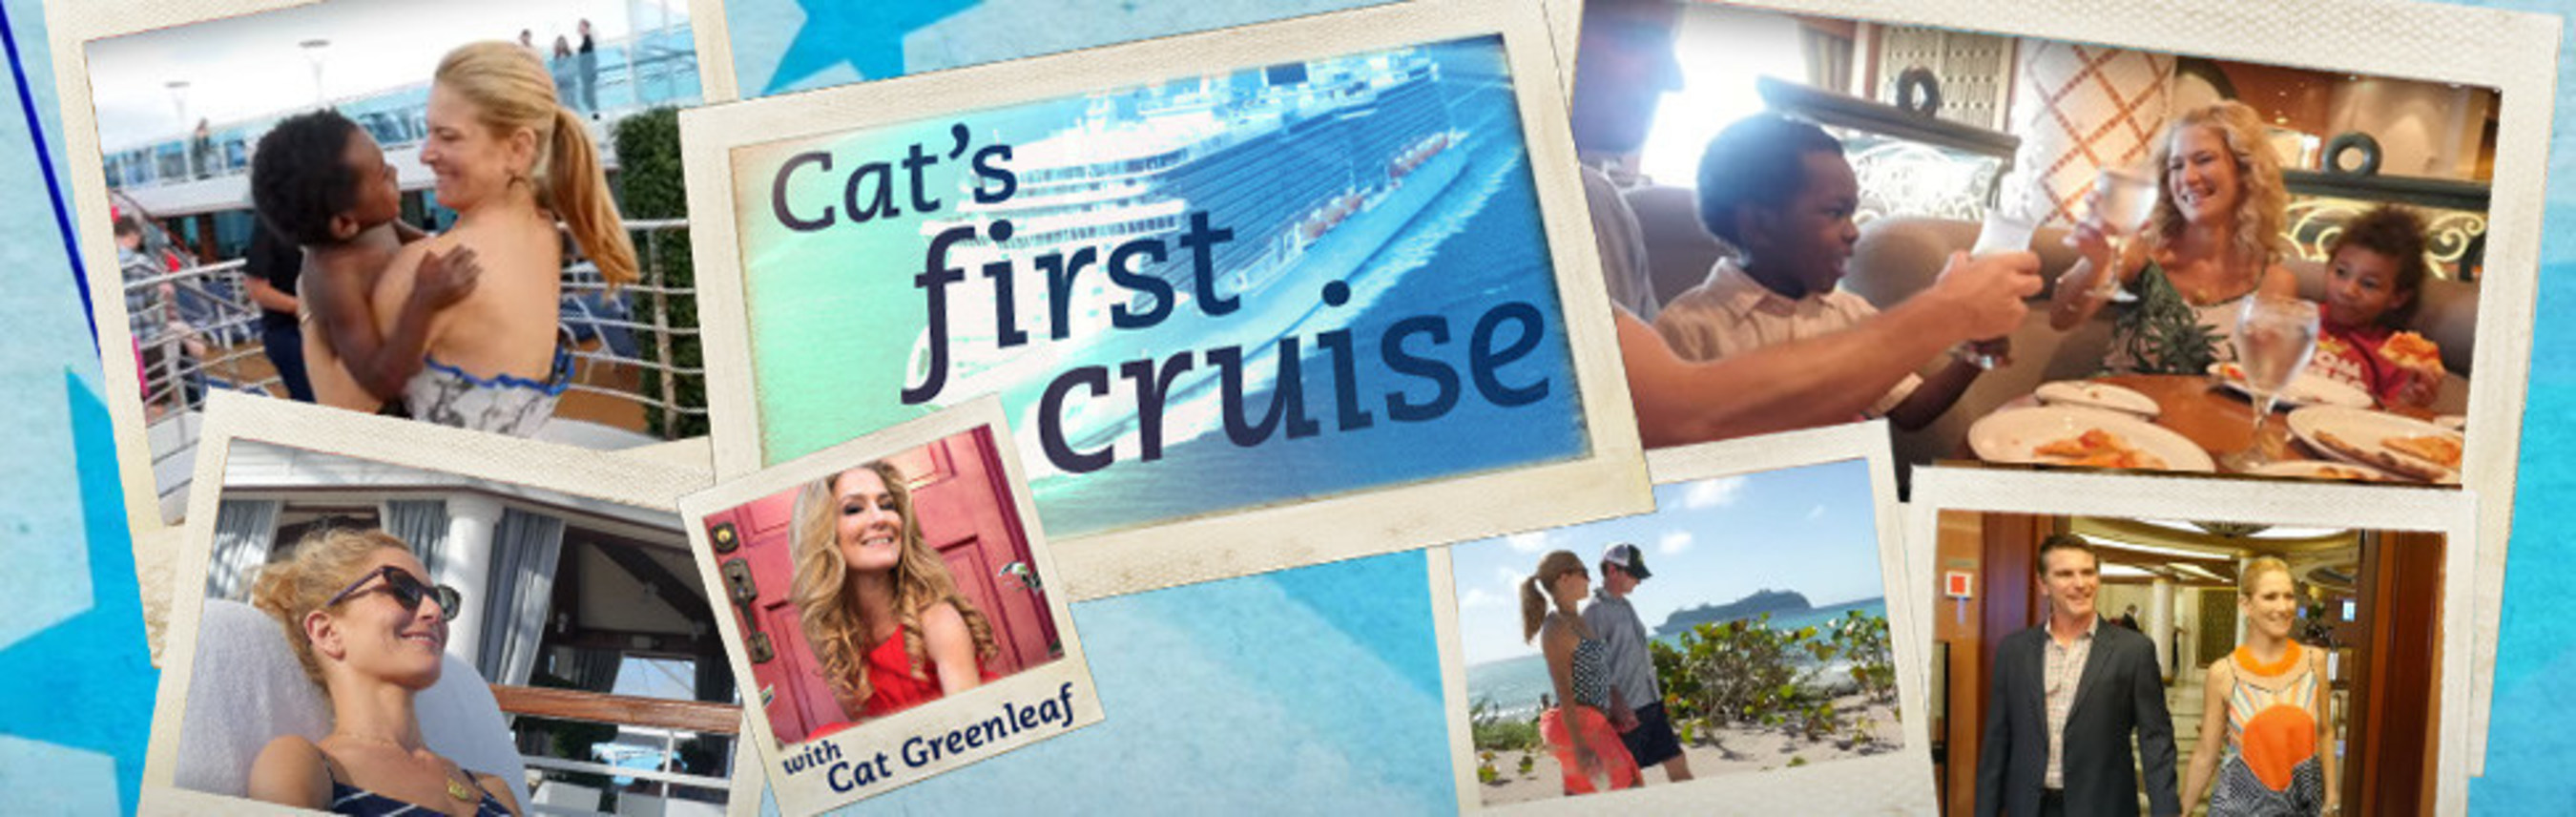 Princess Cruises Presents New Web Video Series to Guide First-Time Cruisers